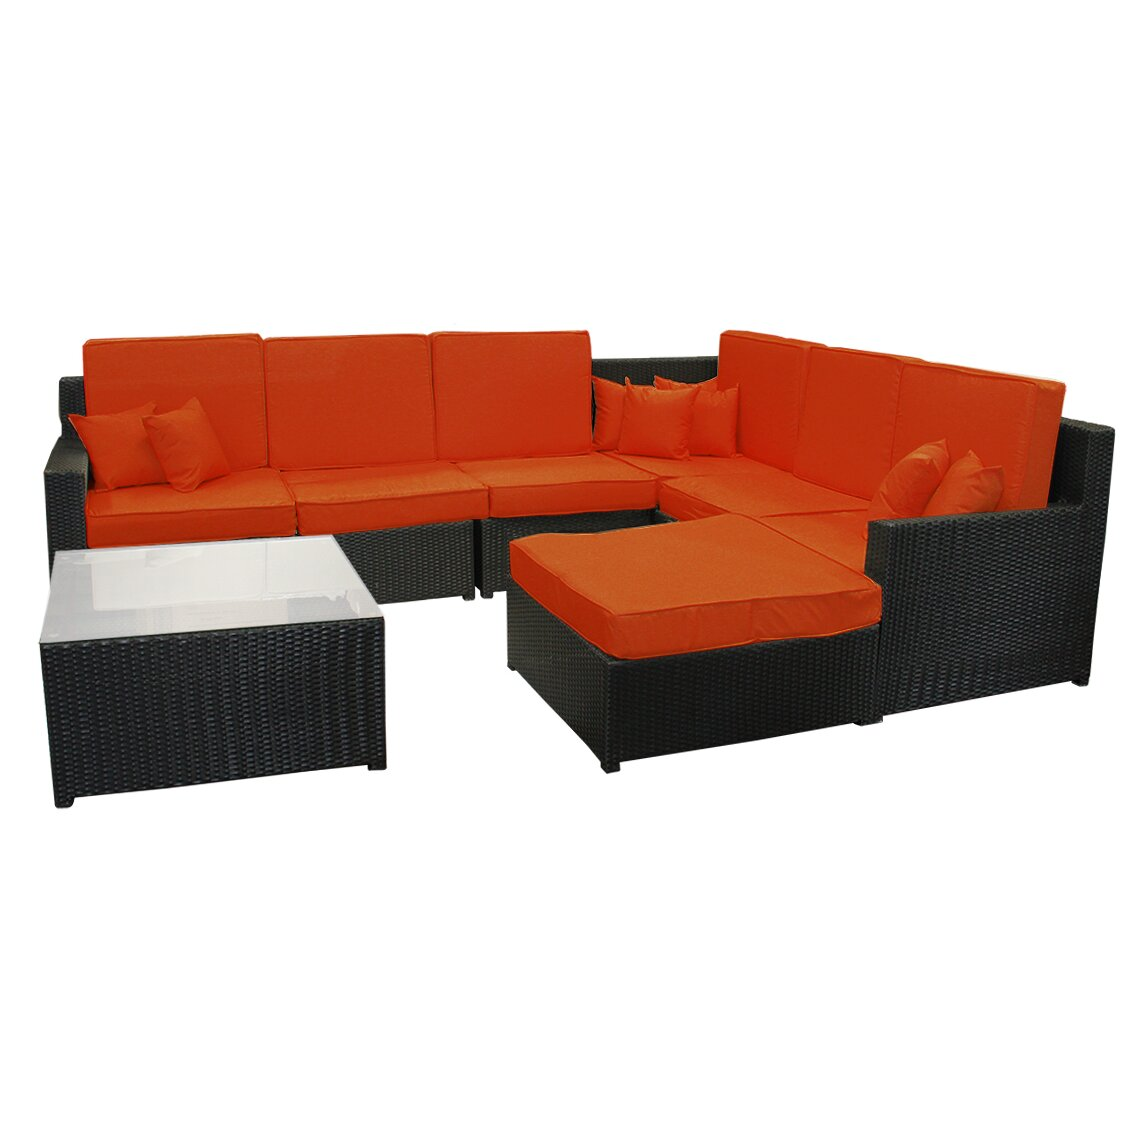 8 Piece Resin Wicker Outdoor Furniture Sectional Sofa